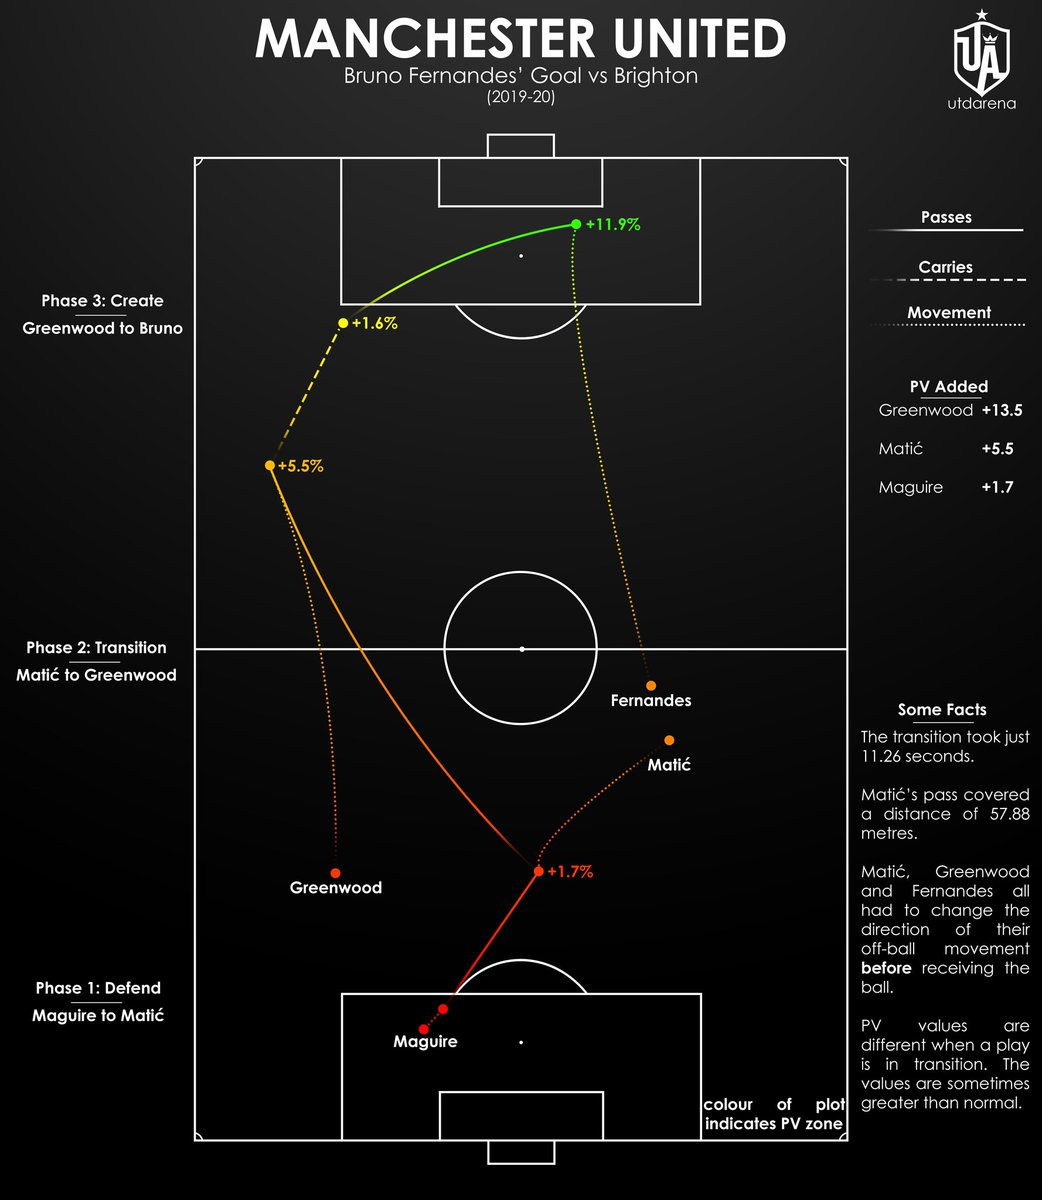 Bruno Fernandes' goal vs Brighton — the counter attack — was truly wonderful.  I mapped out the transition below via events and phases, adding the PV added as well as some facts about the goal.  In just 11.26 seconds we went from defending a long ball to scoring. https://t.co/Sxy0ZBOuE7